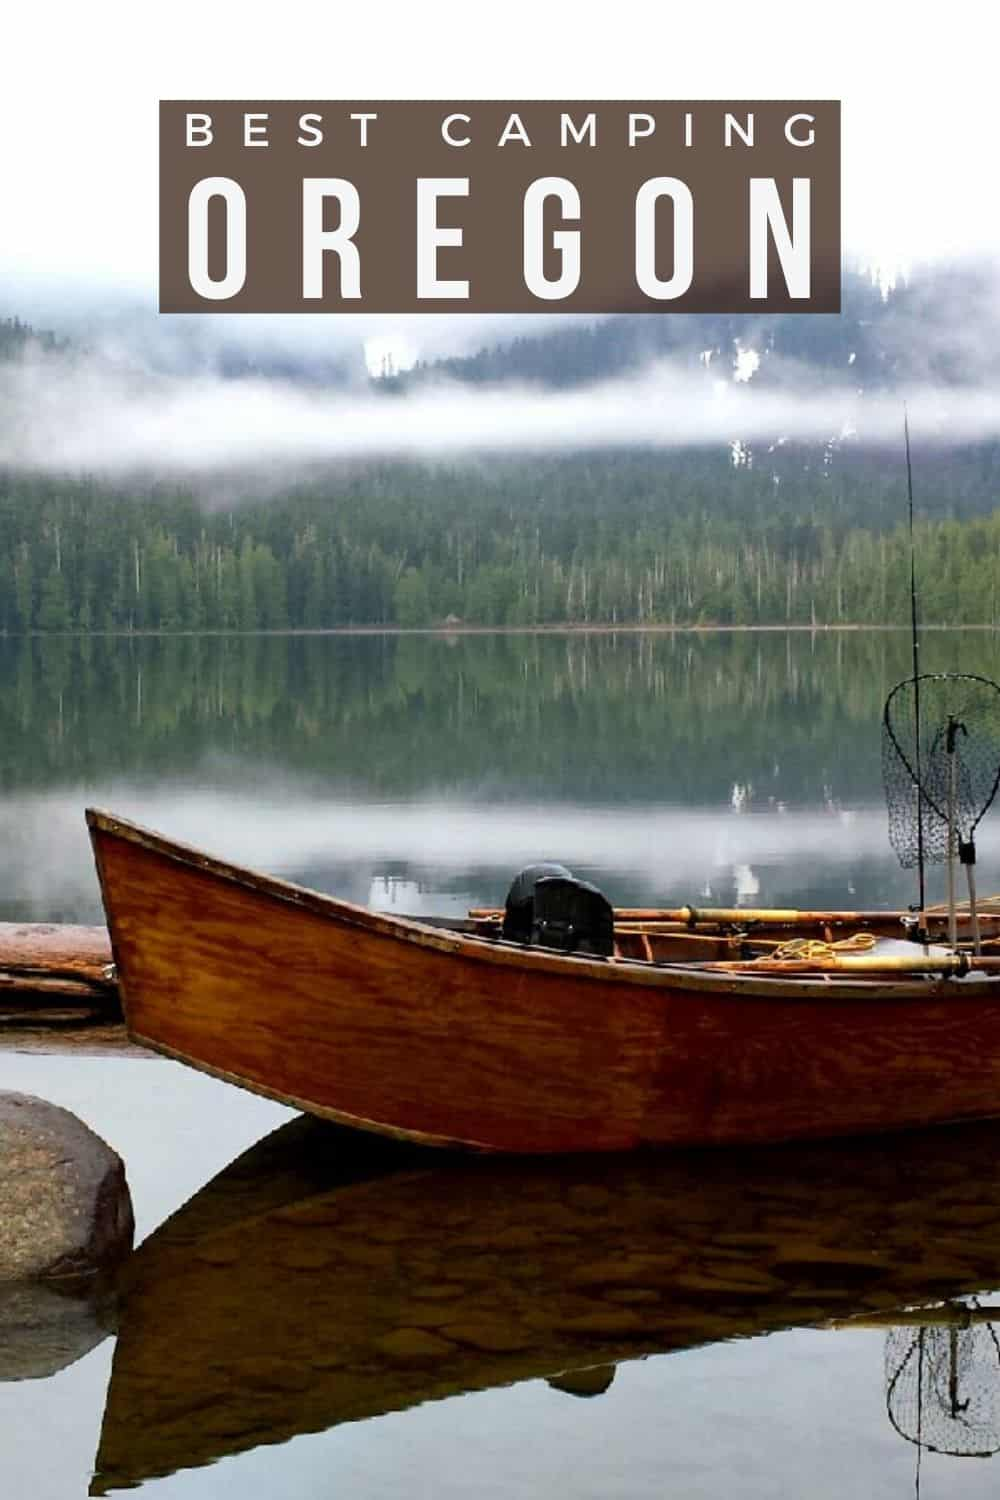 Best Camping sites in Oregon To Visit